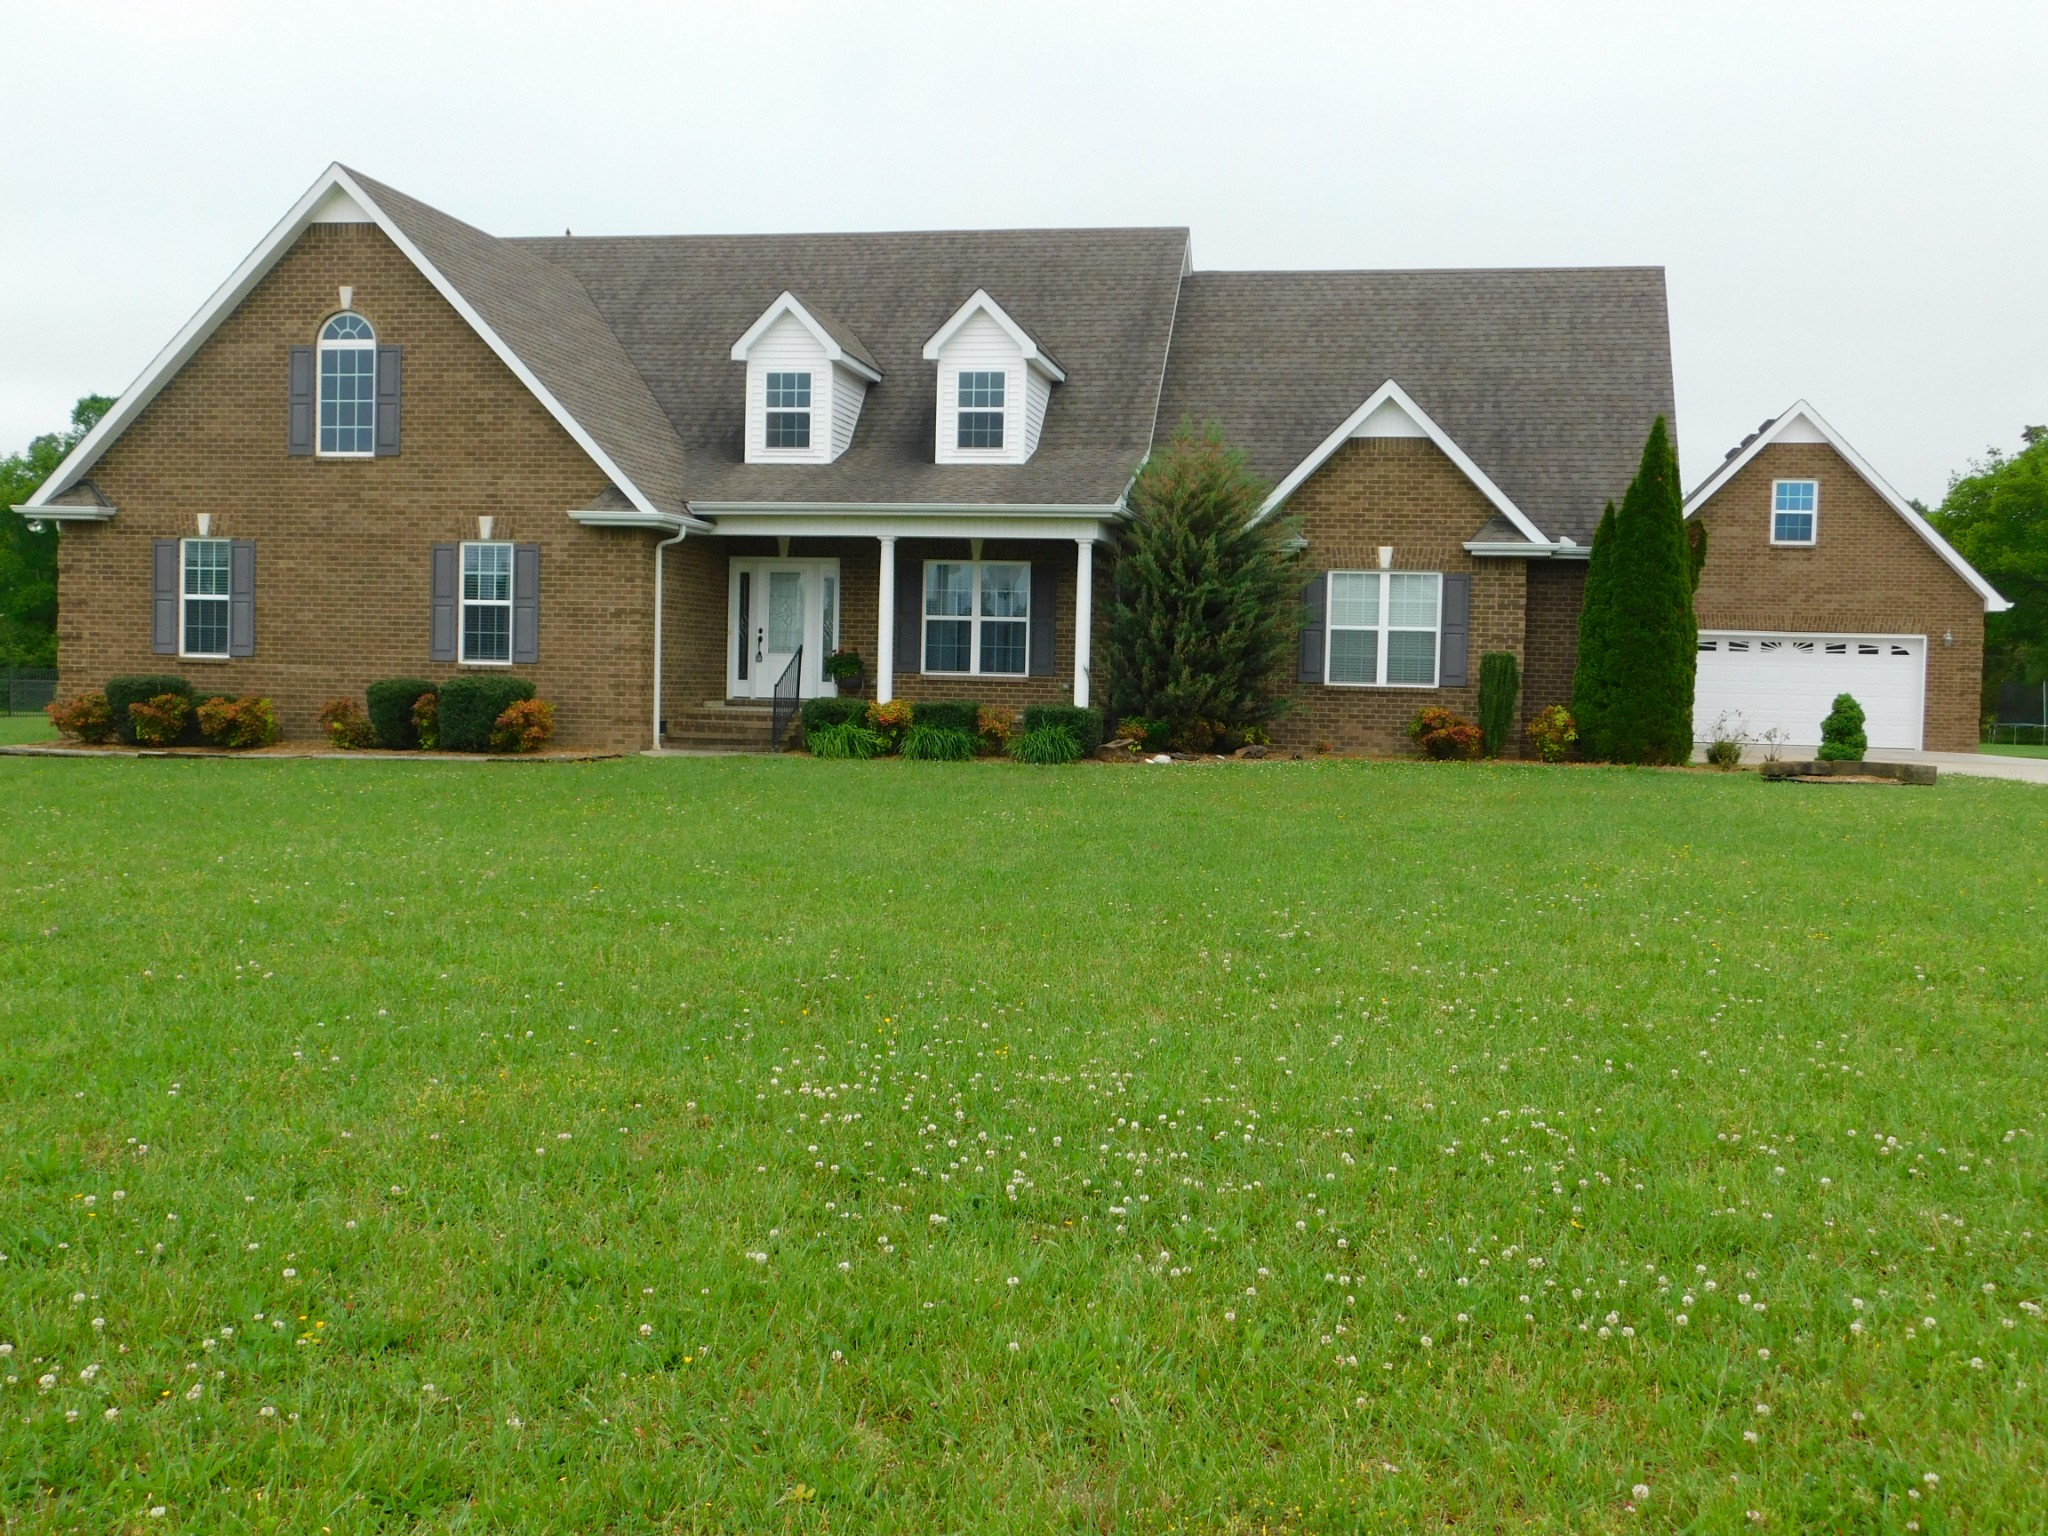 415 Roberts Creek Cir Property Photo - Manchester, TN real estate listing